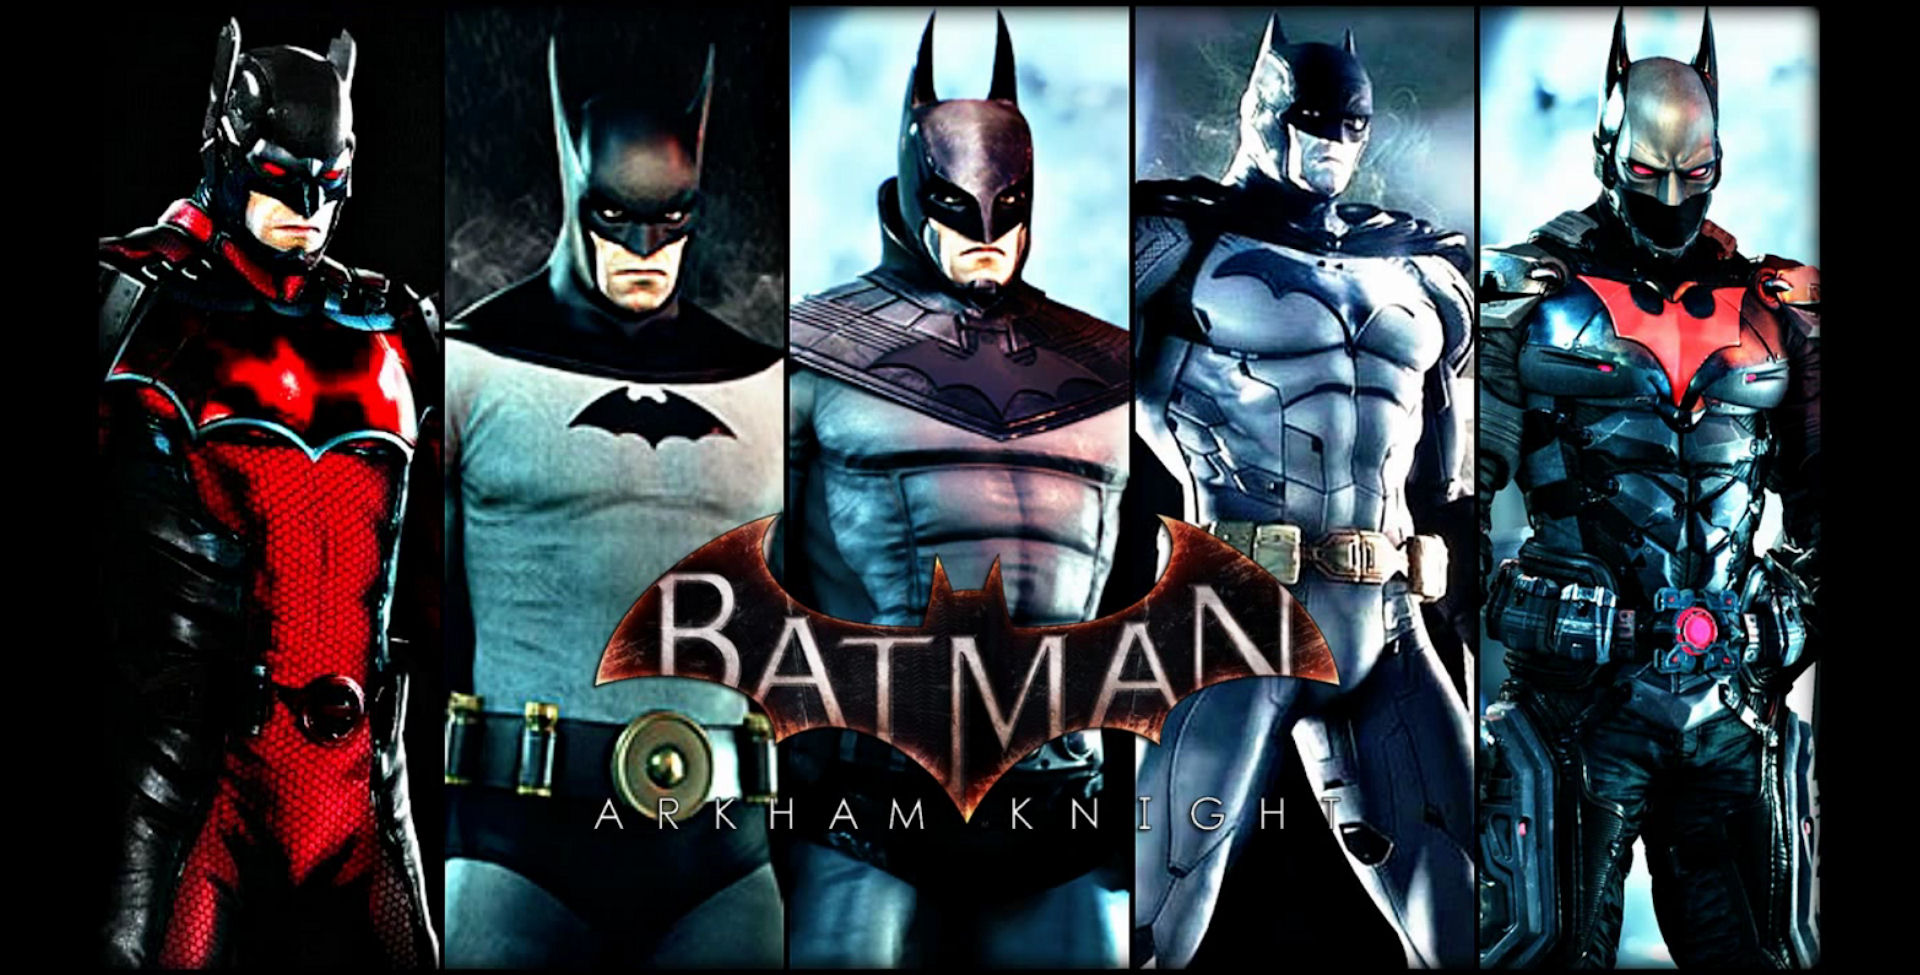 How To Unlock All Batman Arkham Knight Costumes